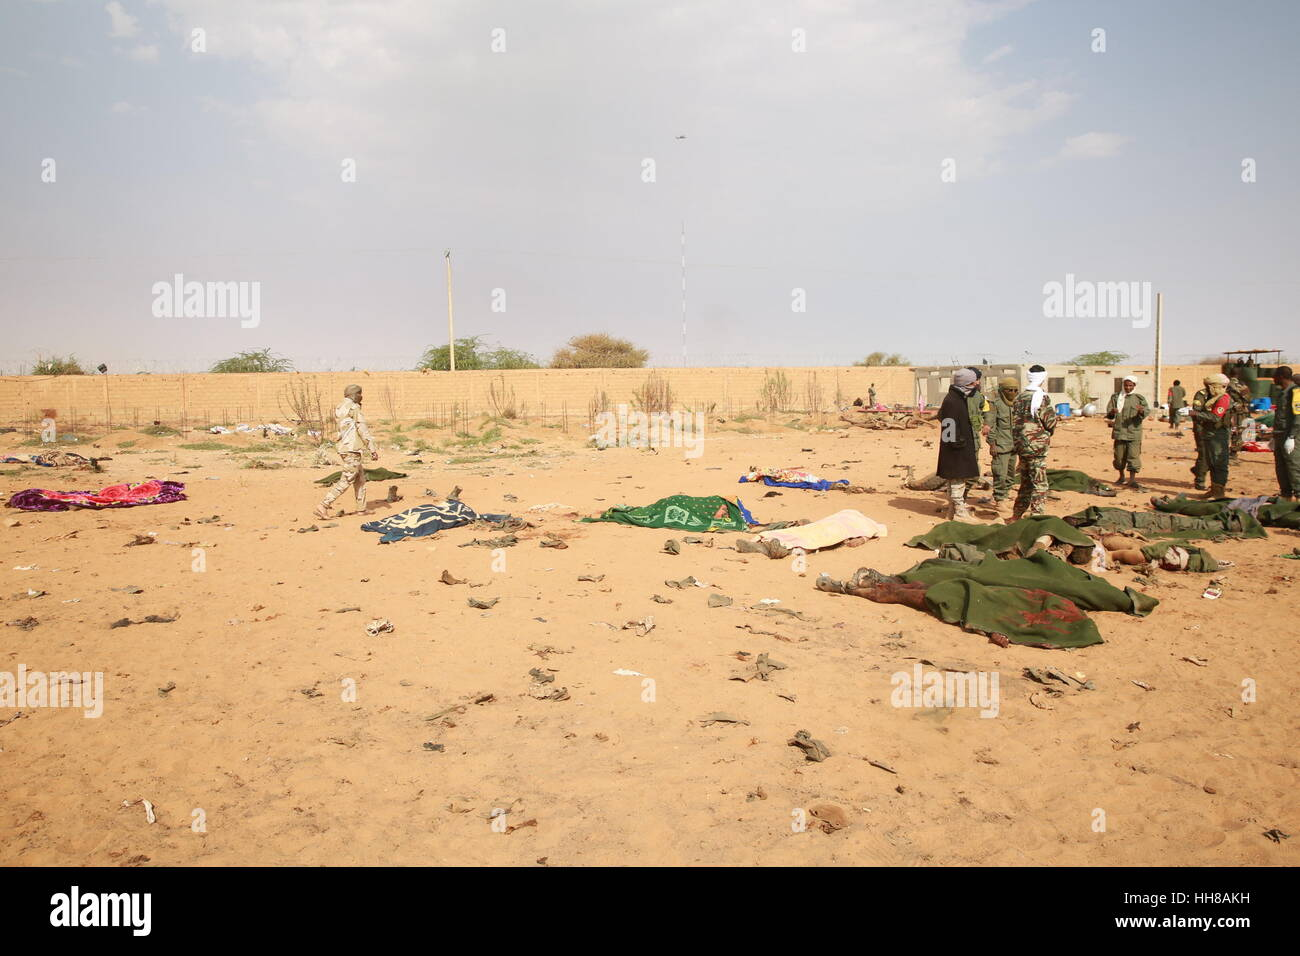 Gao, Mali. 18th January 2017. Photo taken on Jan. 18, 2017 shows the bodies of victims at a car bomb attack site - Stock Image